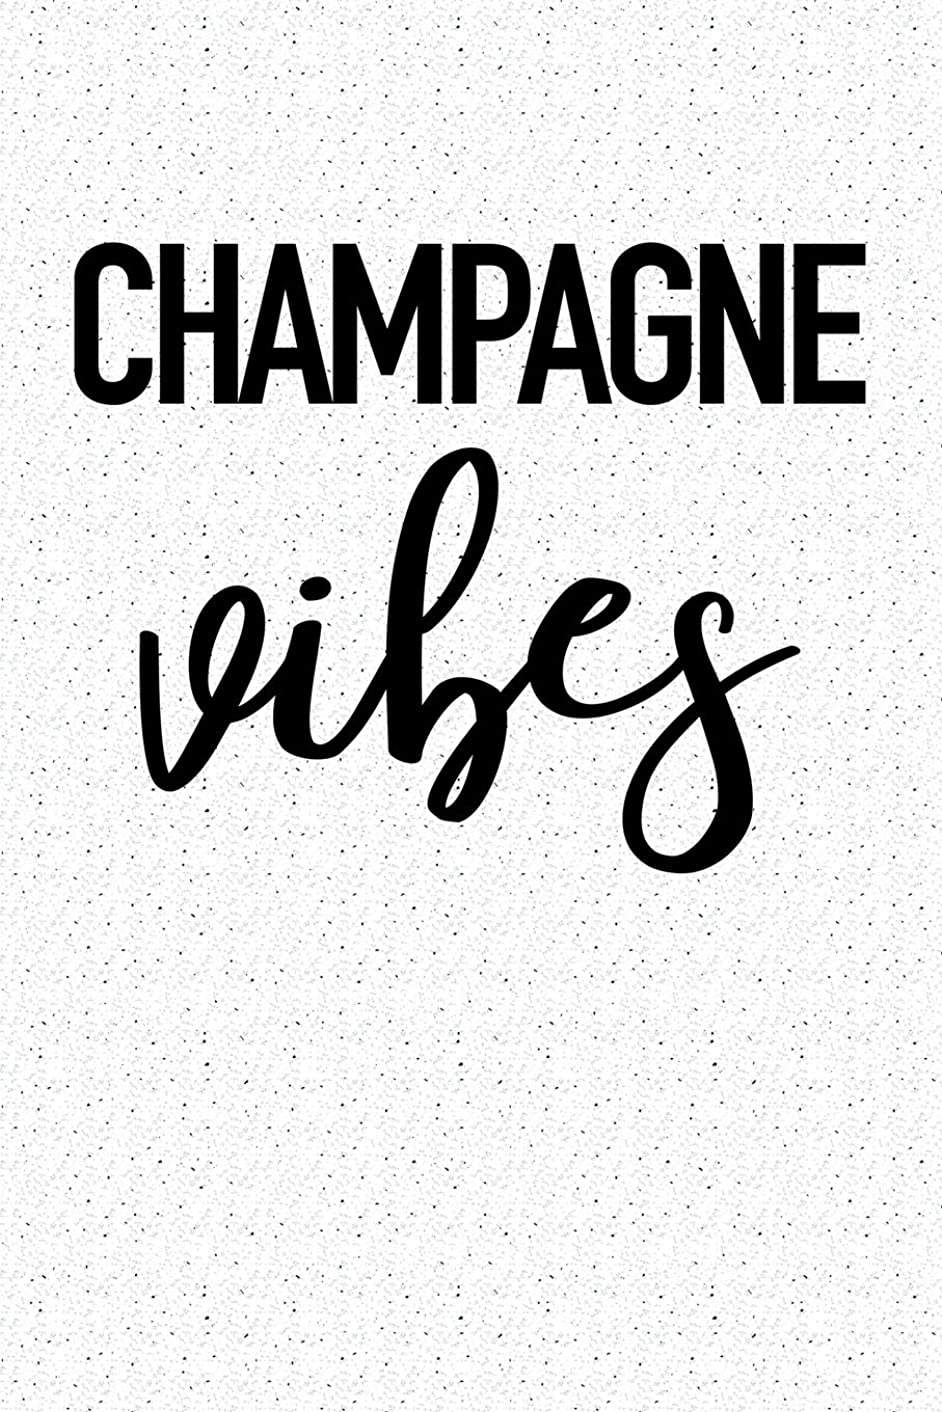 Champagne Vibes: A 6x9 Inch Matte Softcover Notebook Journal With 120 Blank Lined Pages And A French Wine Drinking Cover Slogan